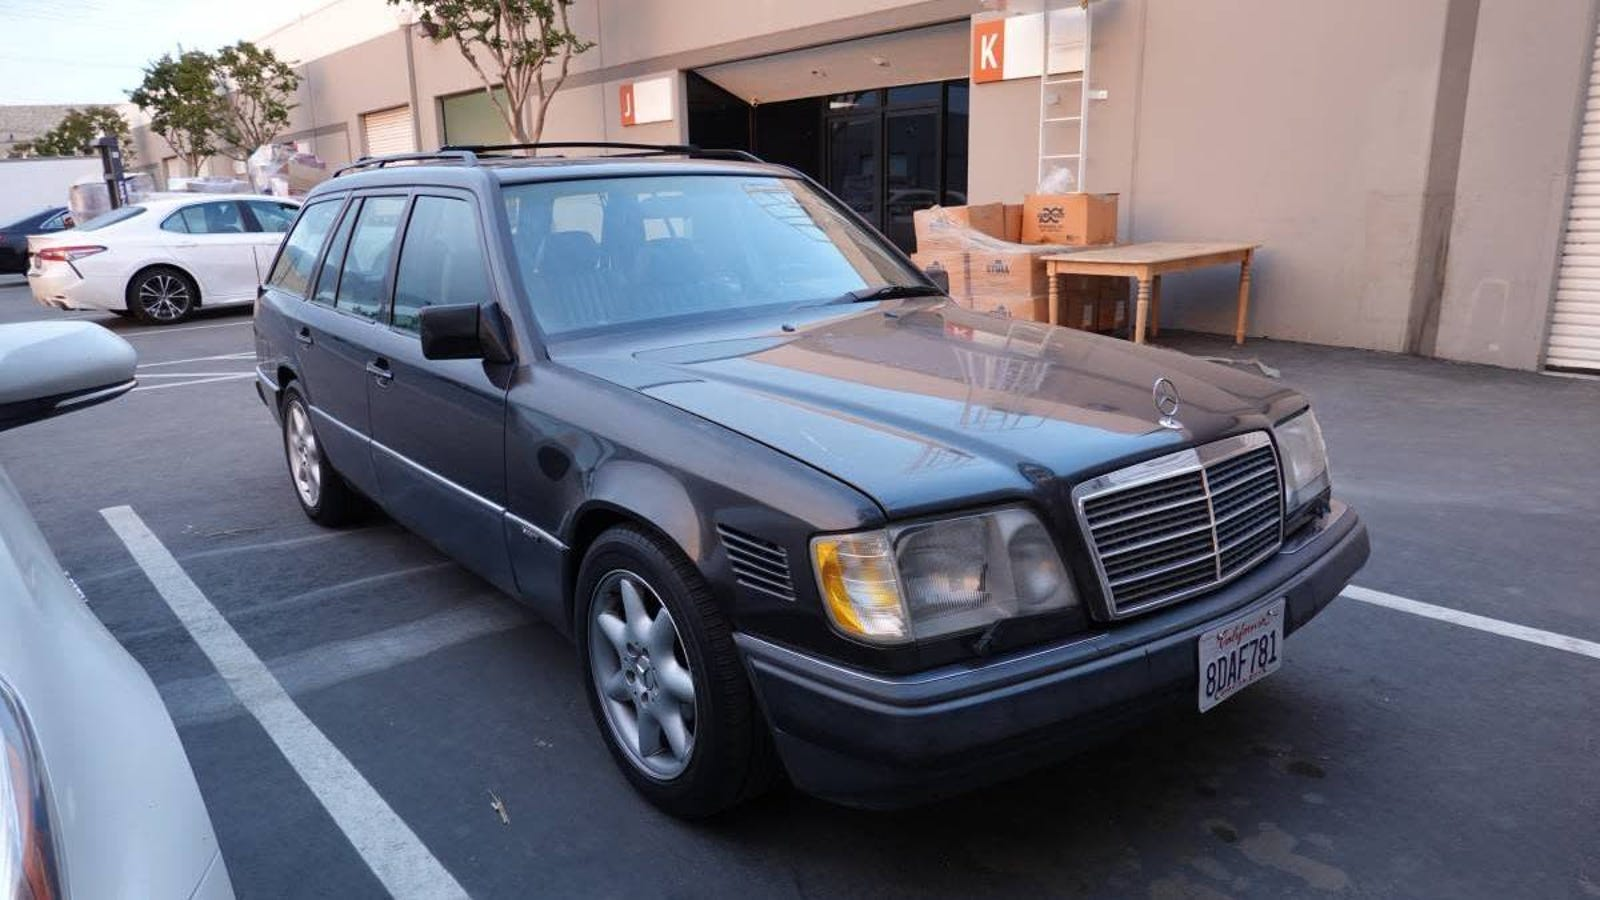 At $2,800, Could This 1995 Mercedes Benz E320 Wagon Haul Home a Win?